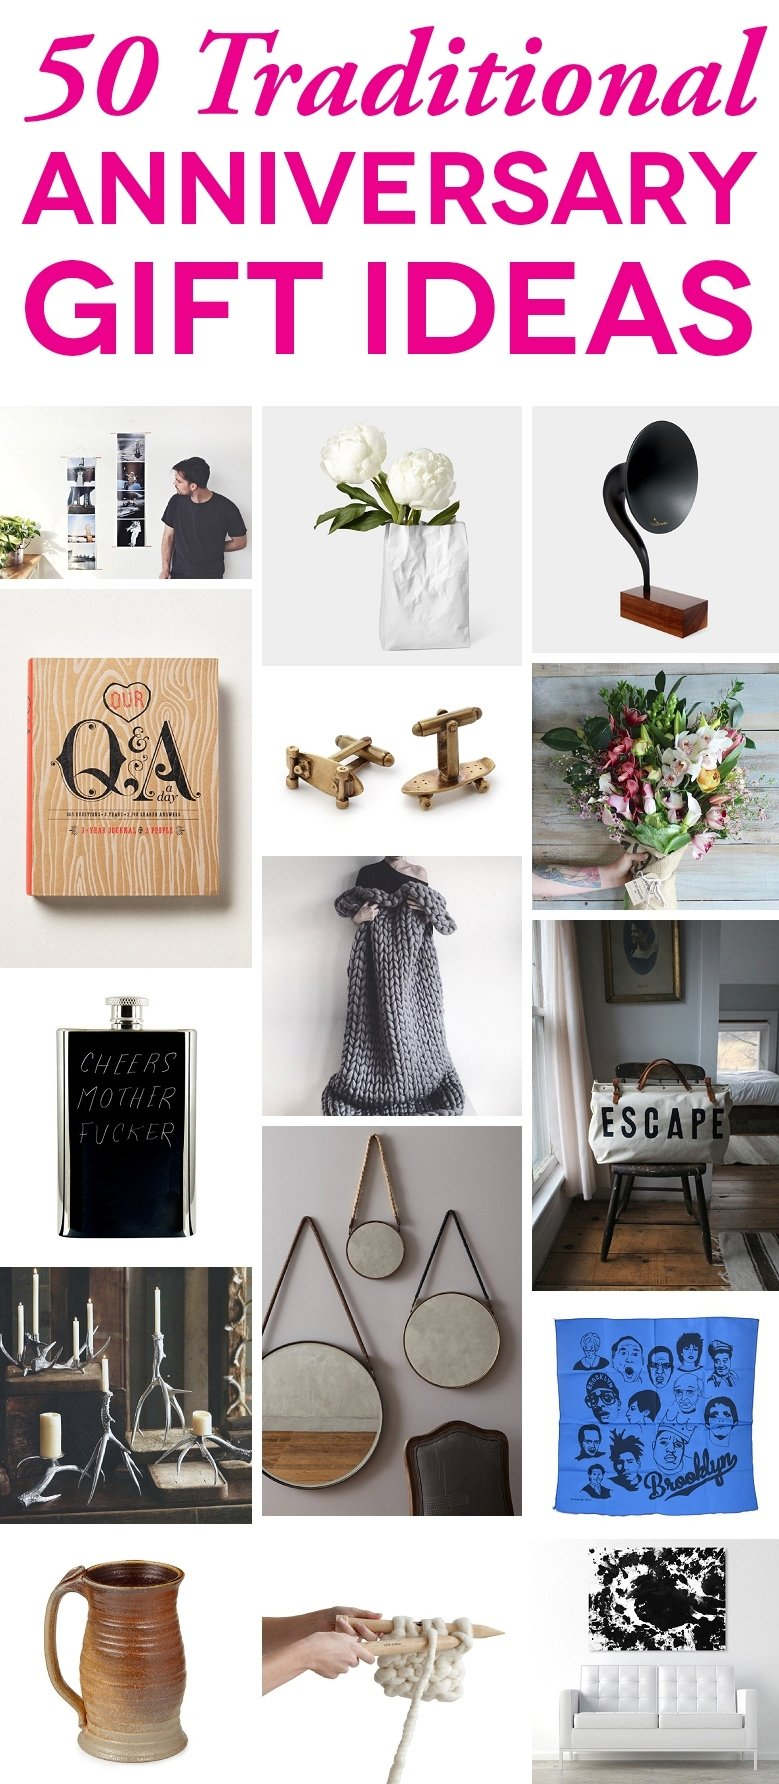 10 Awesome 1St Year Anniversary Gift Ideas For Husband traditional anniversary giftsyear a practical wedding 24 2021